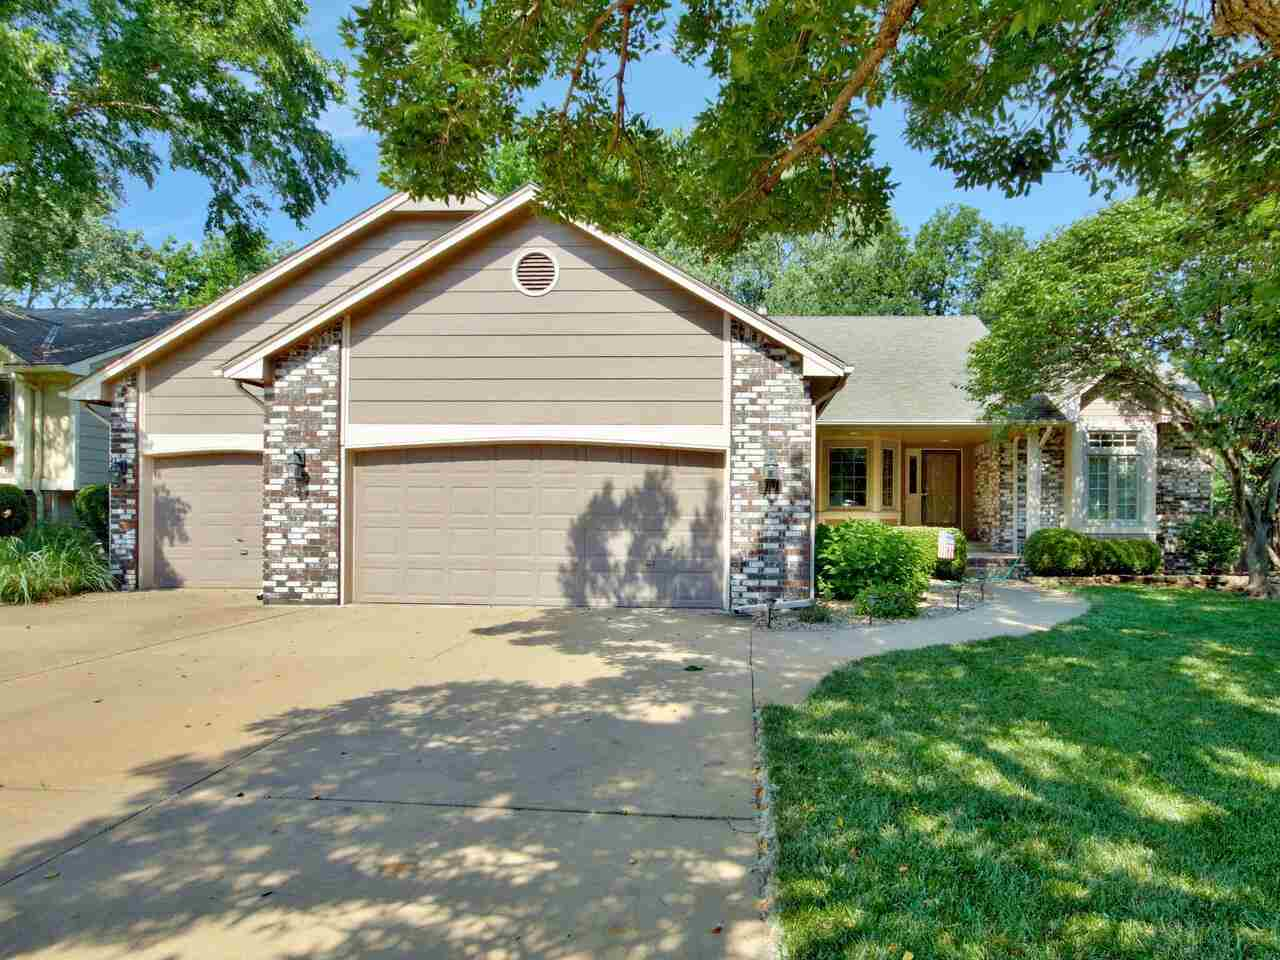 Lovely 4 bedroom, 3 bath ranch with fireplace, formal dining, eating space in the kitchen, vaulted c